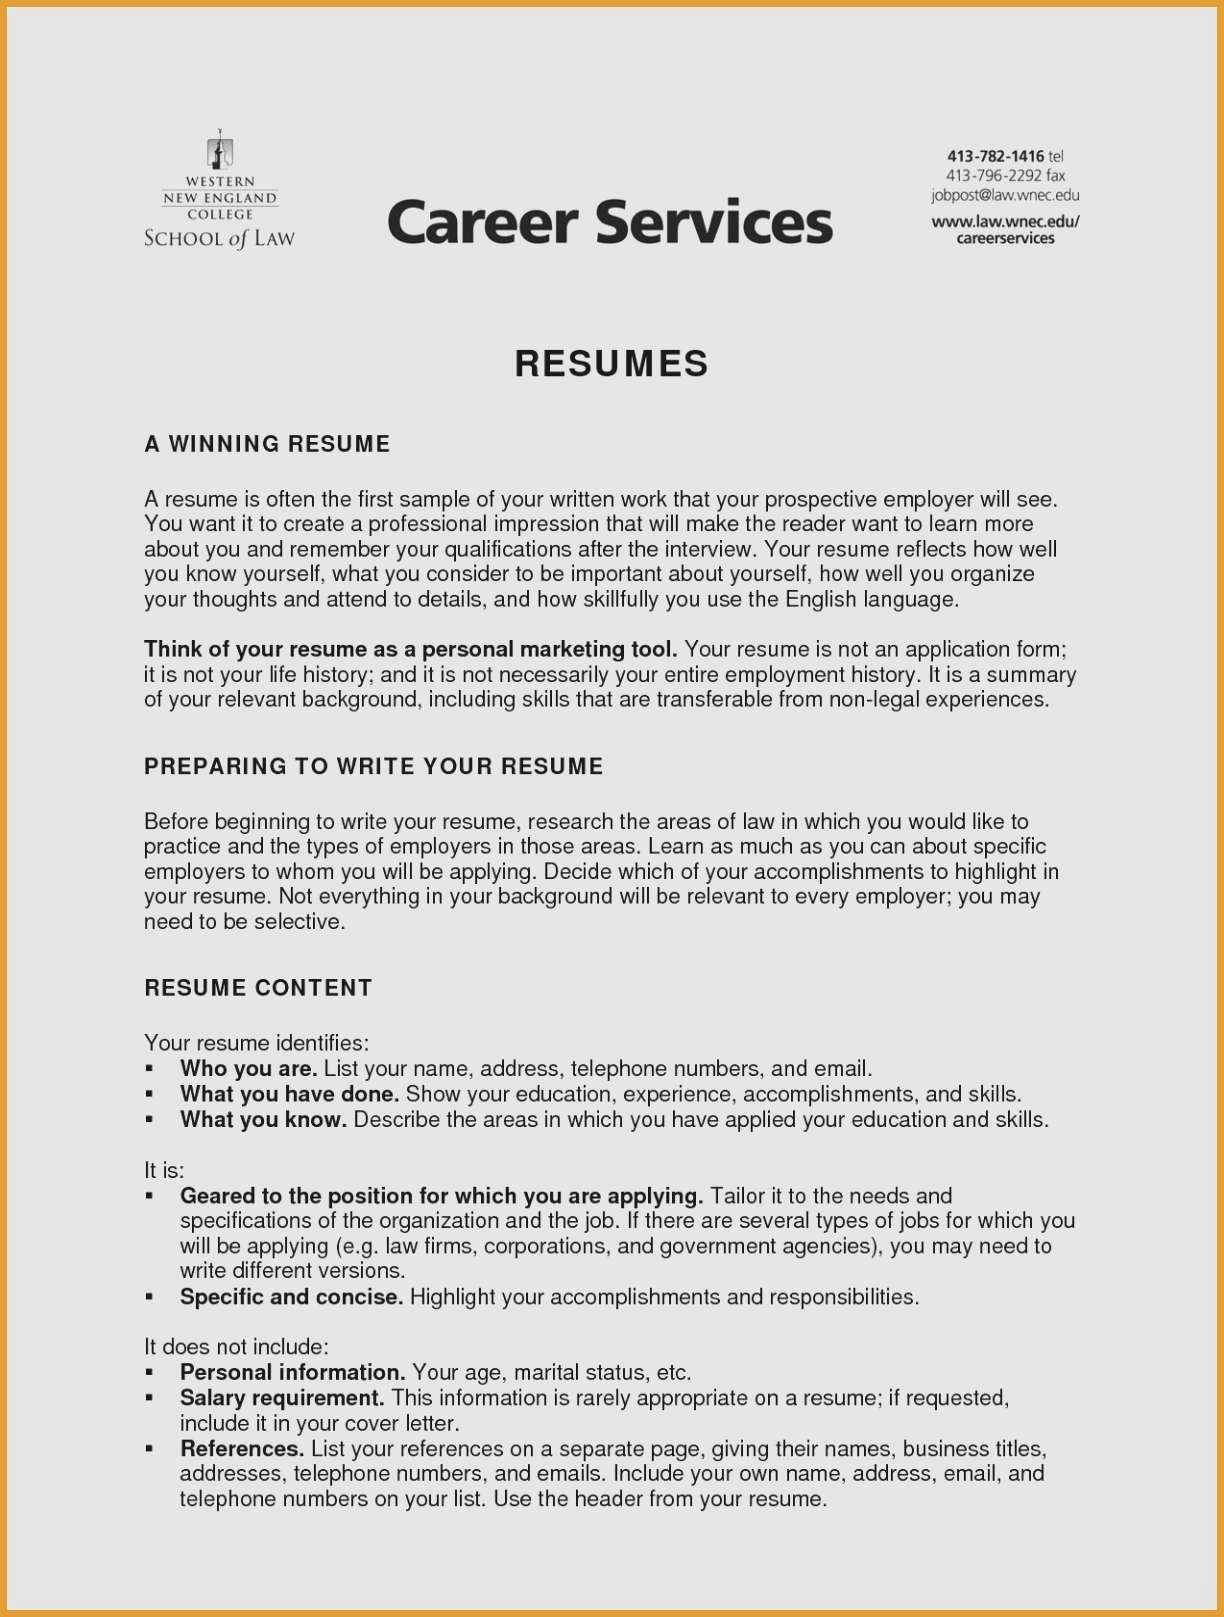 Resume for Marketing Job - Entry Level Marketing Resume Type A Resume Beautiful New Entry Level